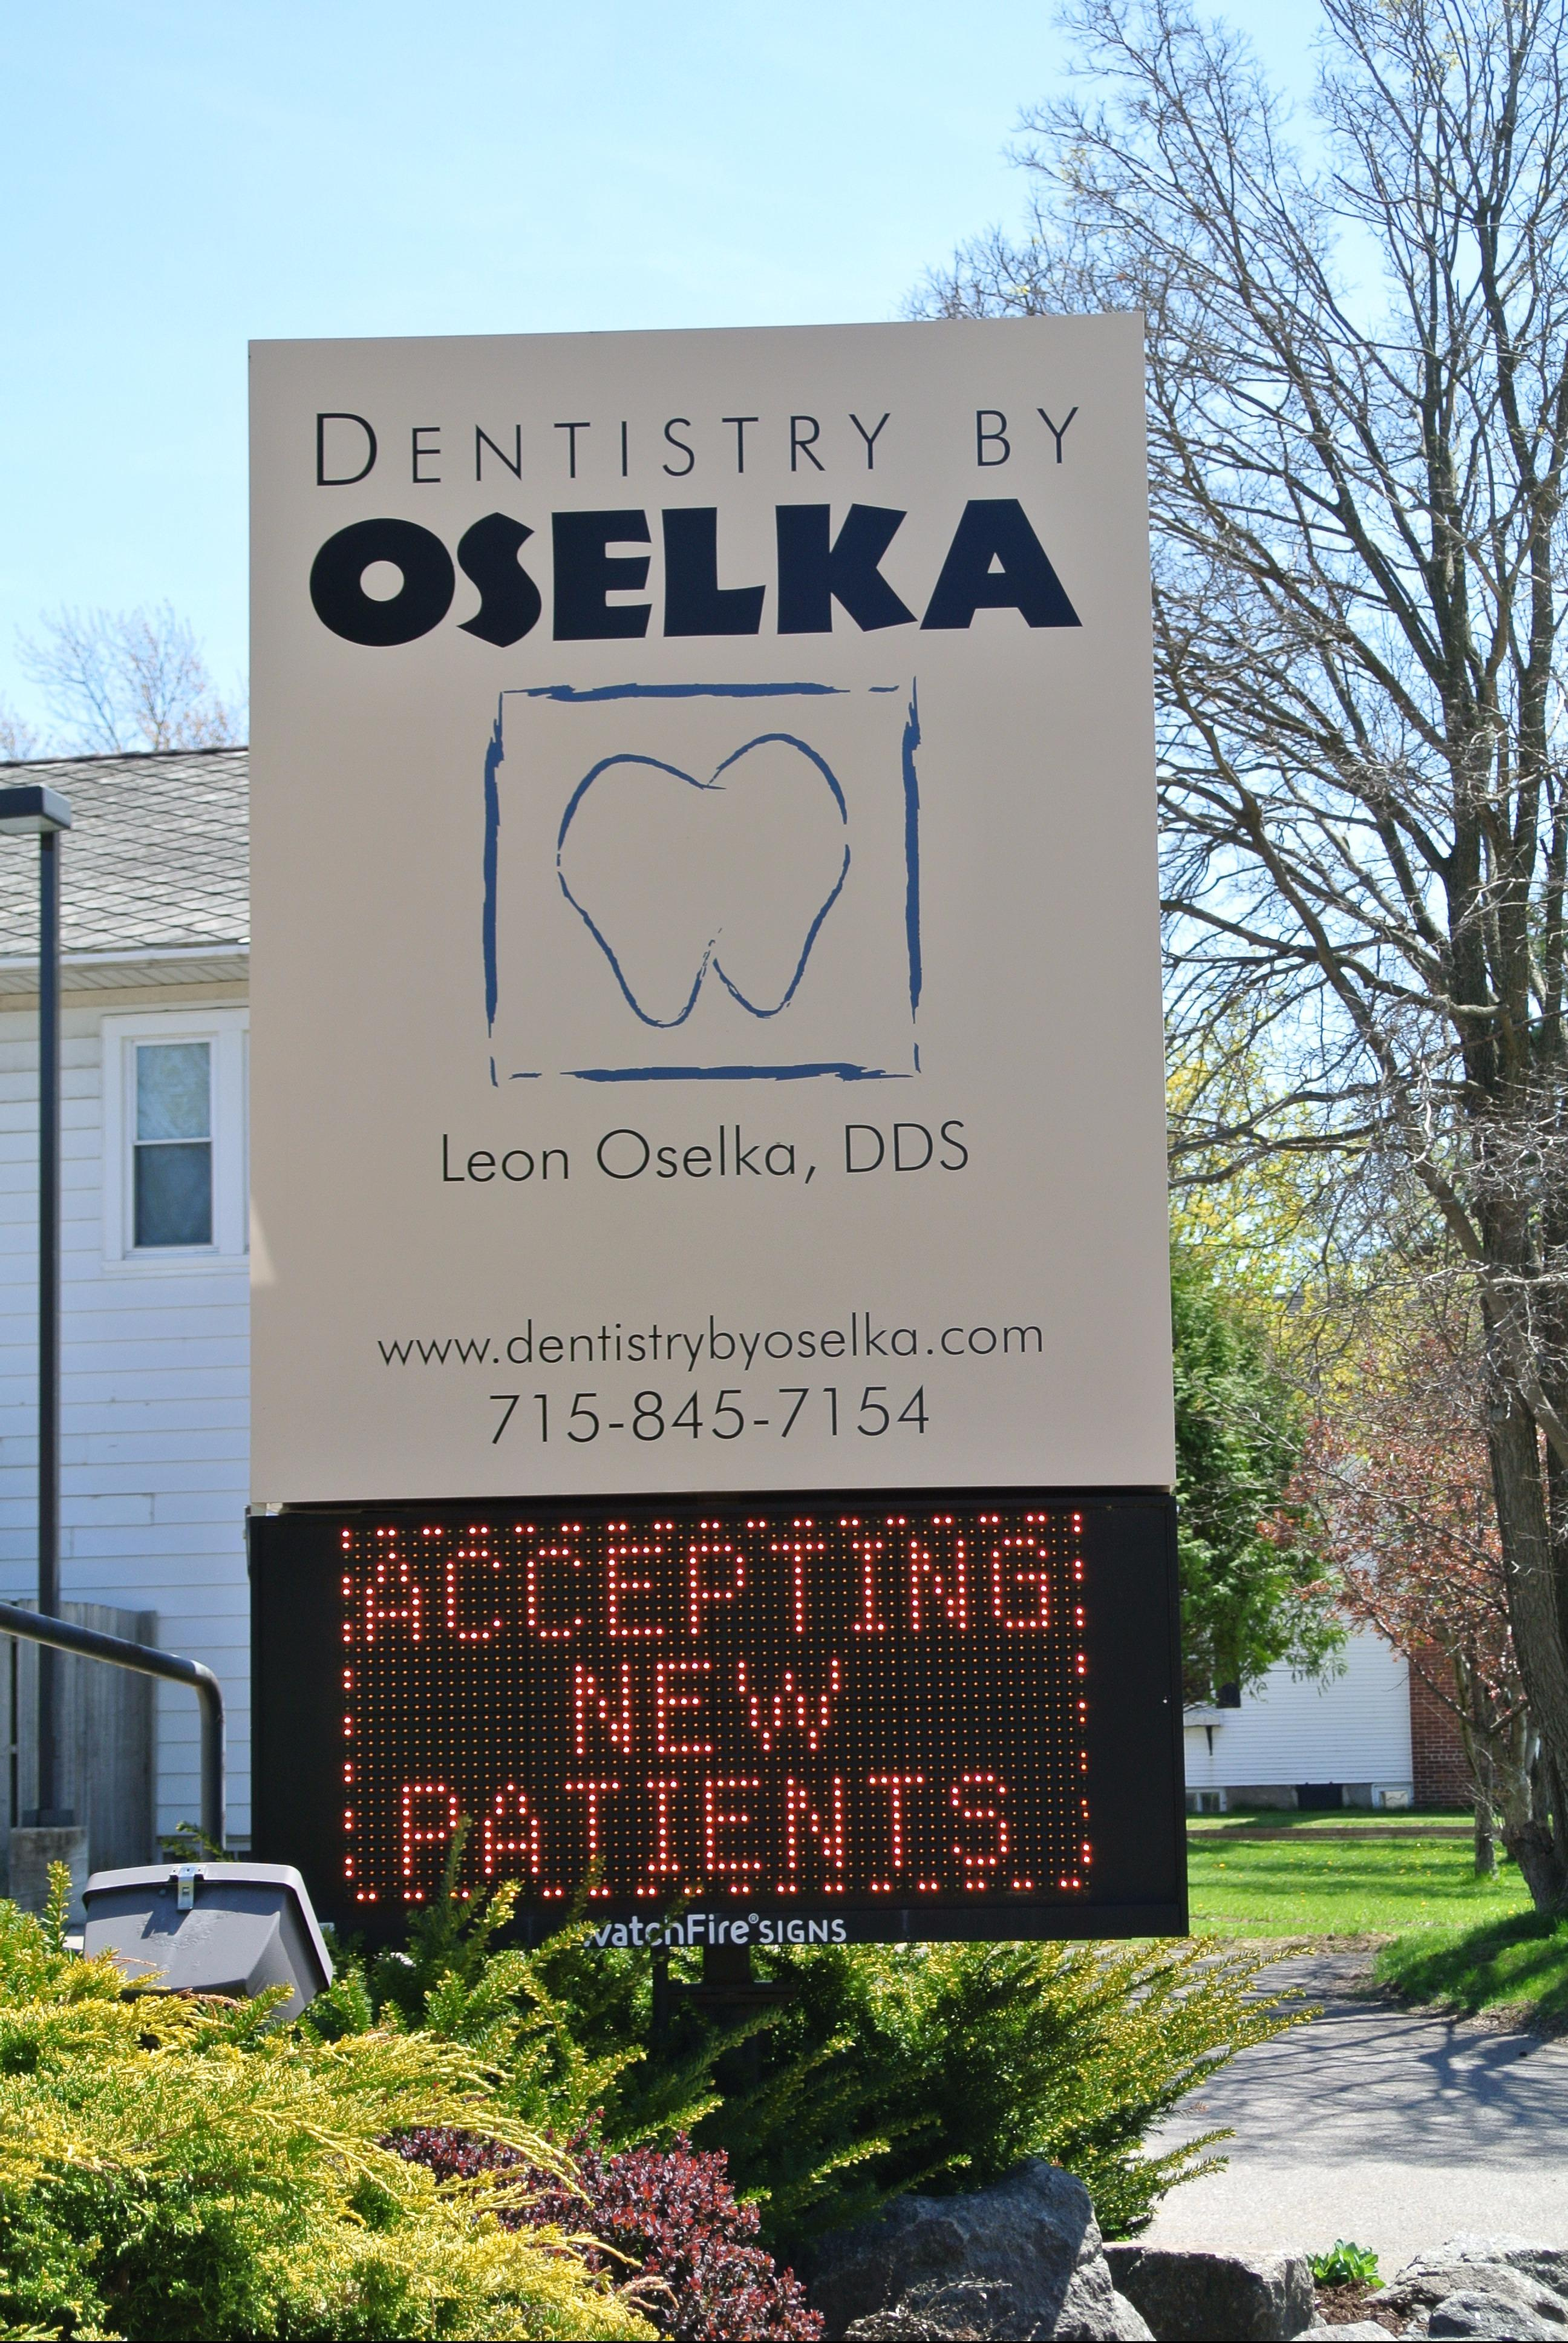 Dentistry by Oselka image 1